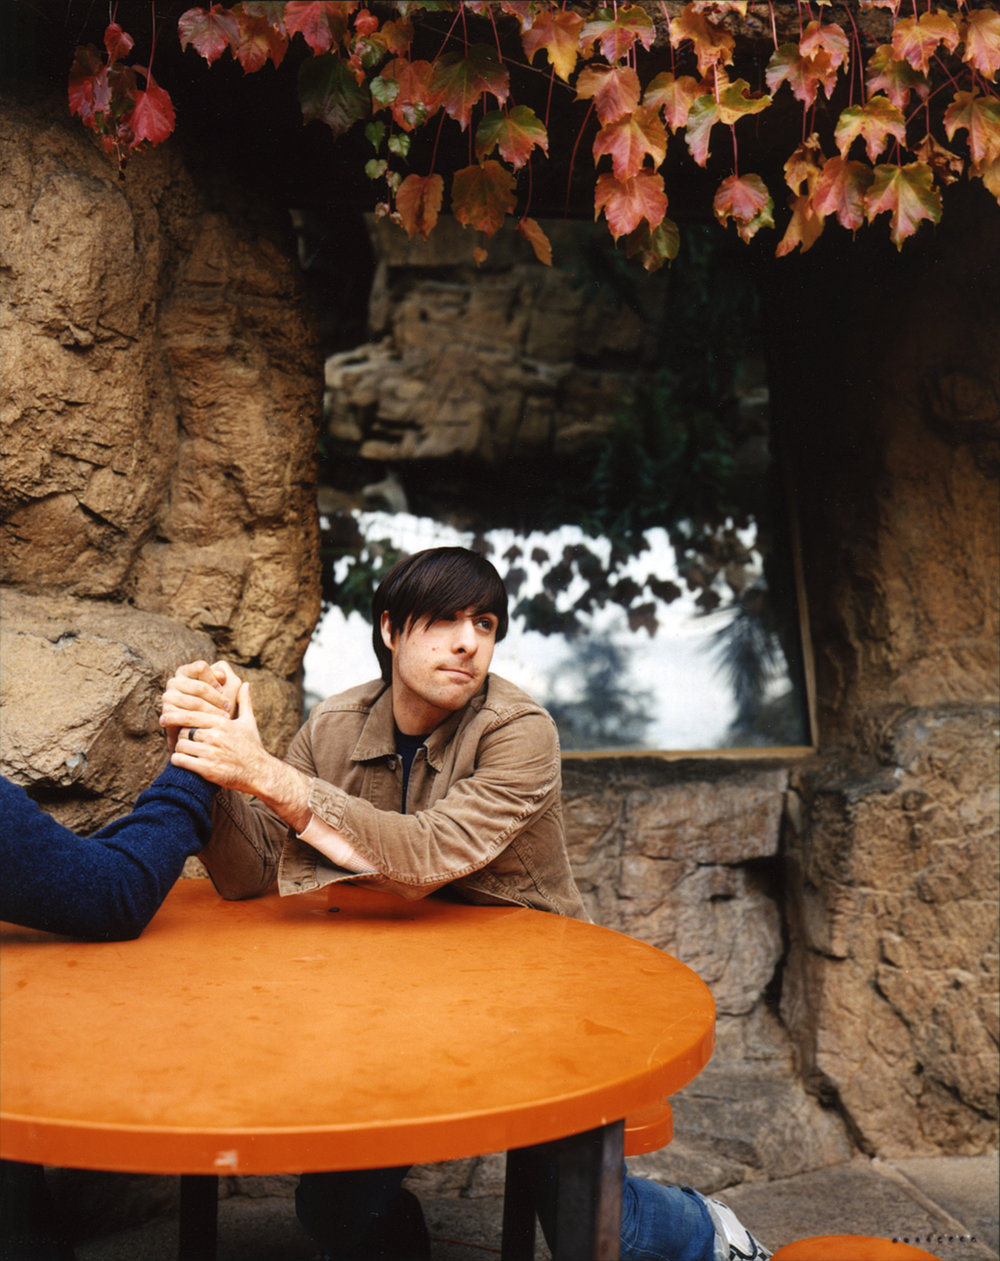 jason.schwartzman.armwrestle.jpg